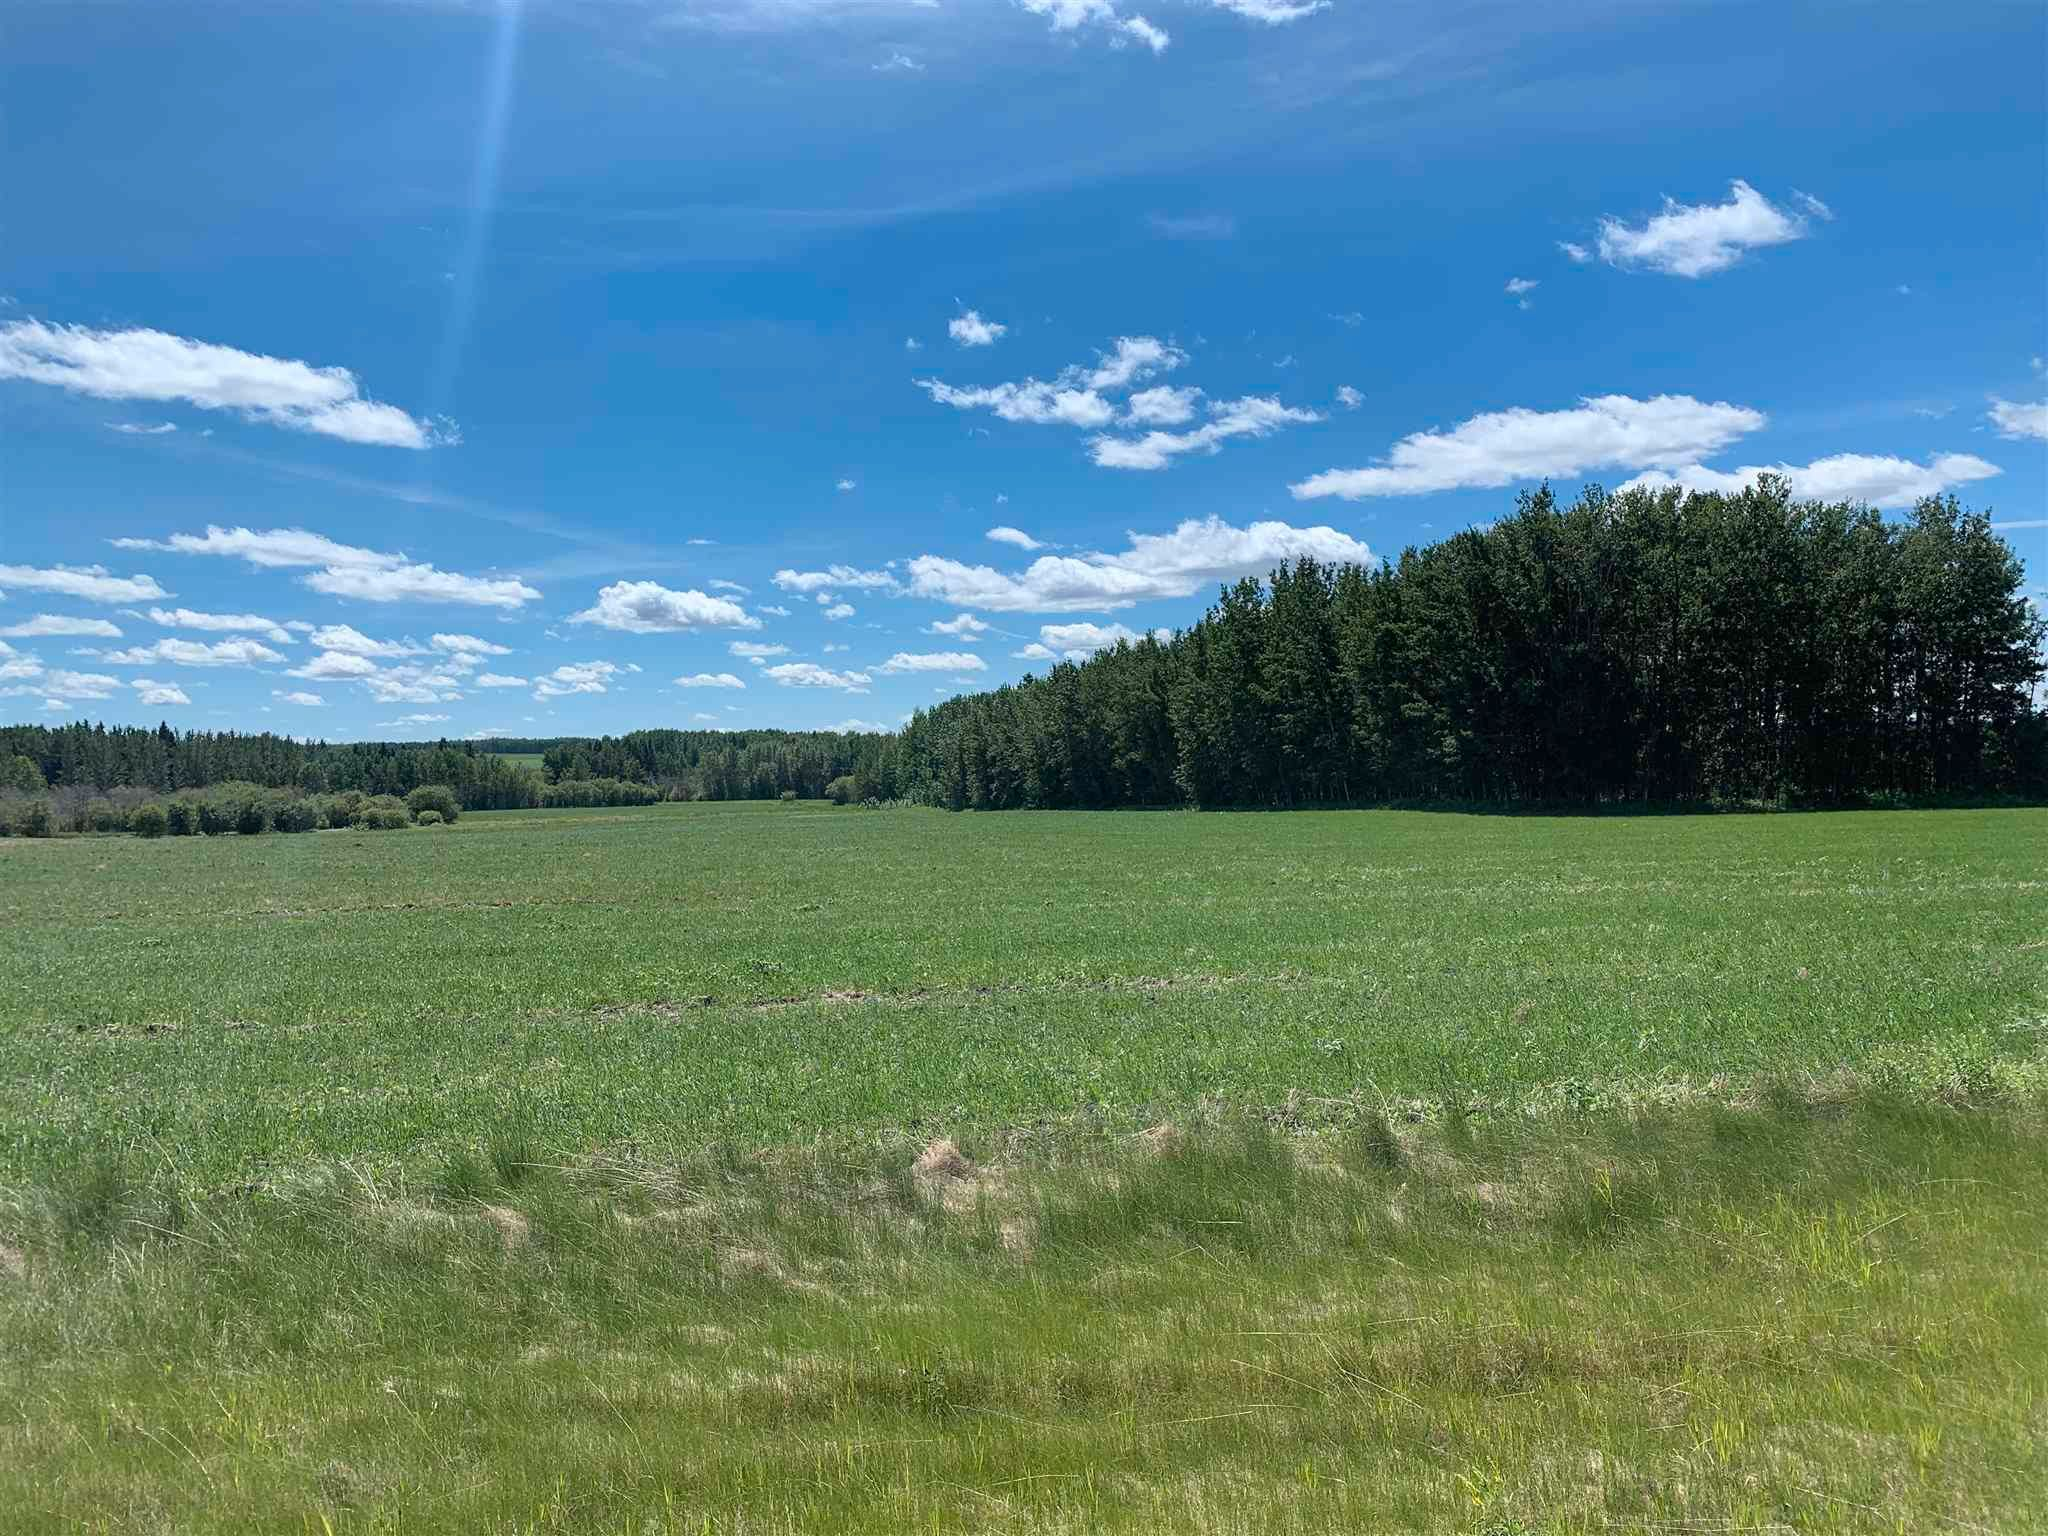 Main Photo: TWP 482 RR 32: Rural Leduc County Rural Land/Vacant Lot for sale : MLS®# E4249796